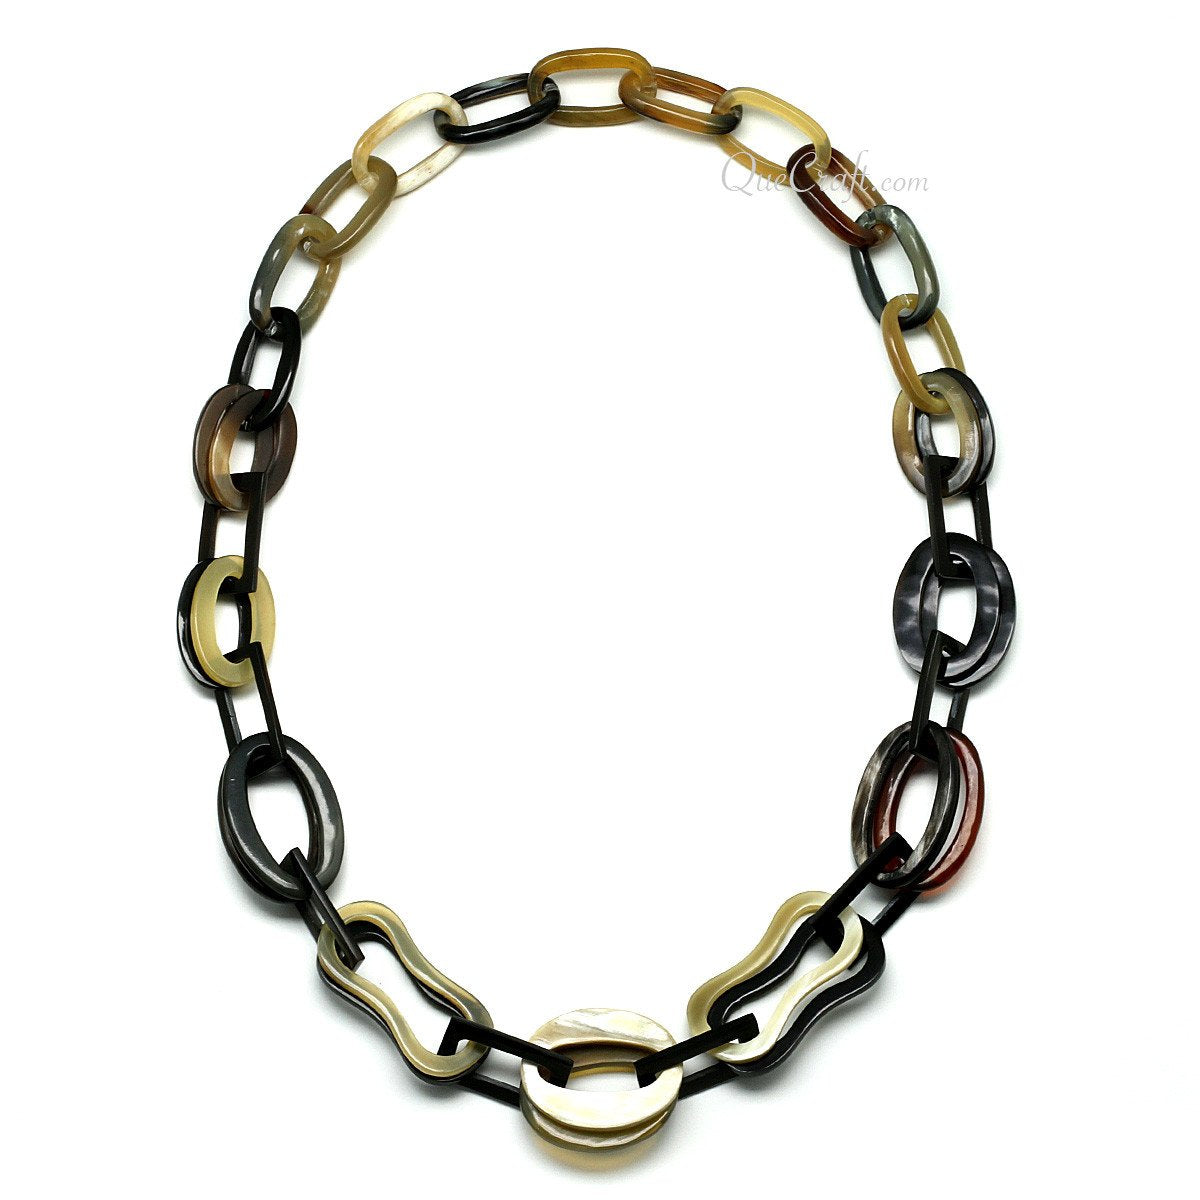 Horn Chain Necklace #11483 - HORN.JEWELRY